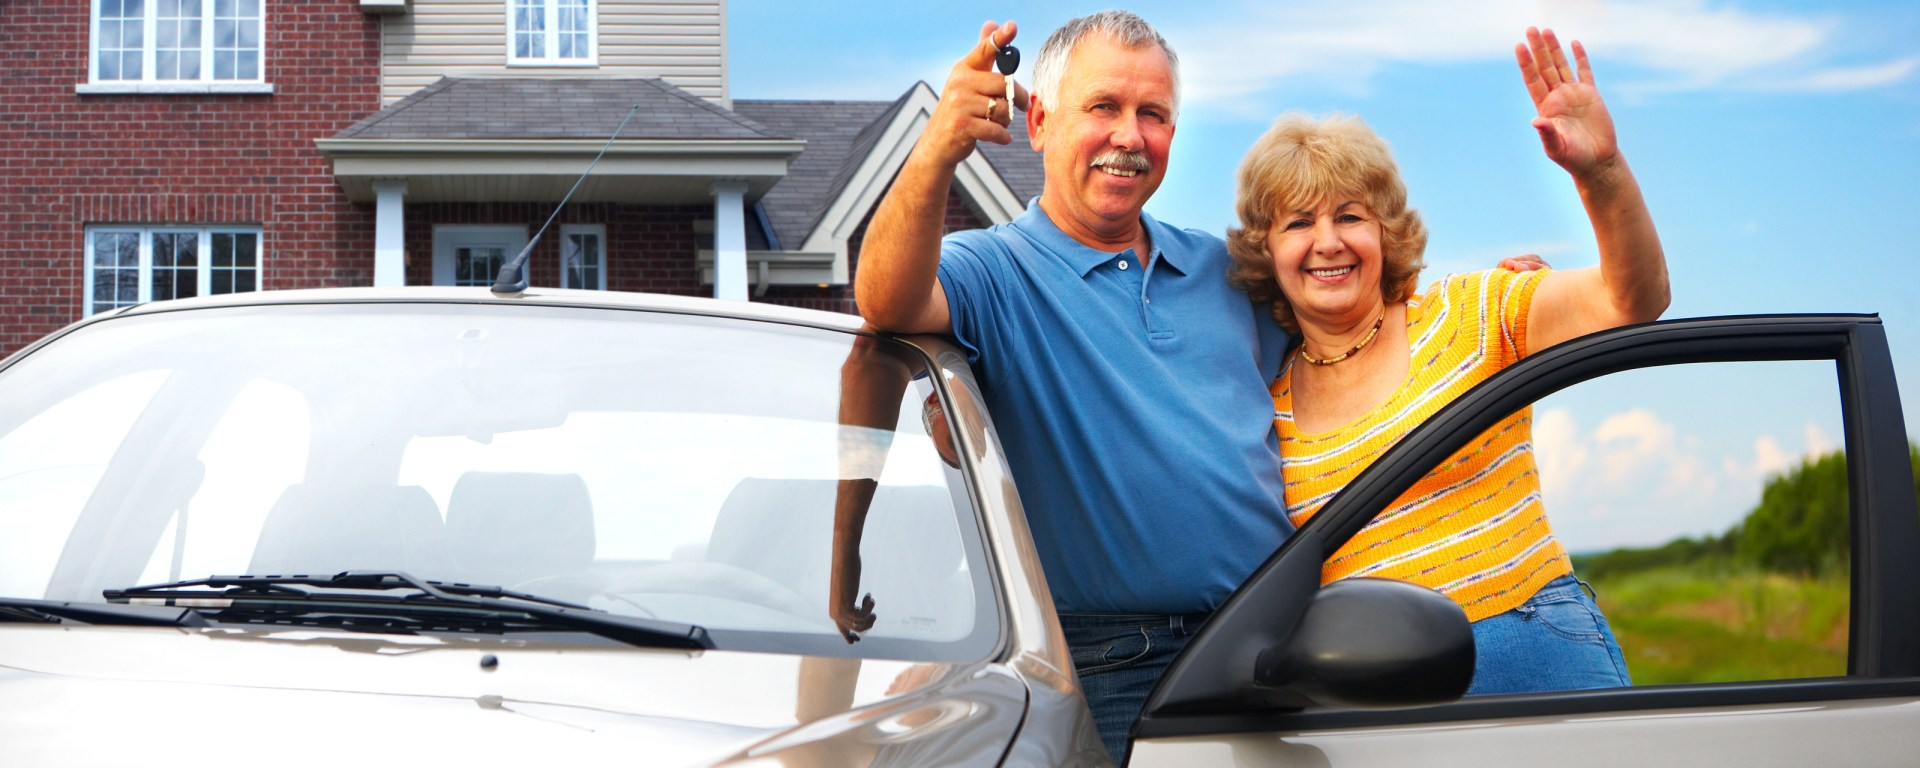 Husband and wife standing in front of a house, smiling next to their new car with the driver door open.